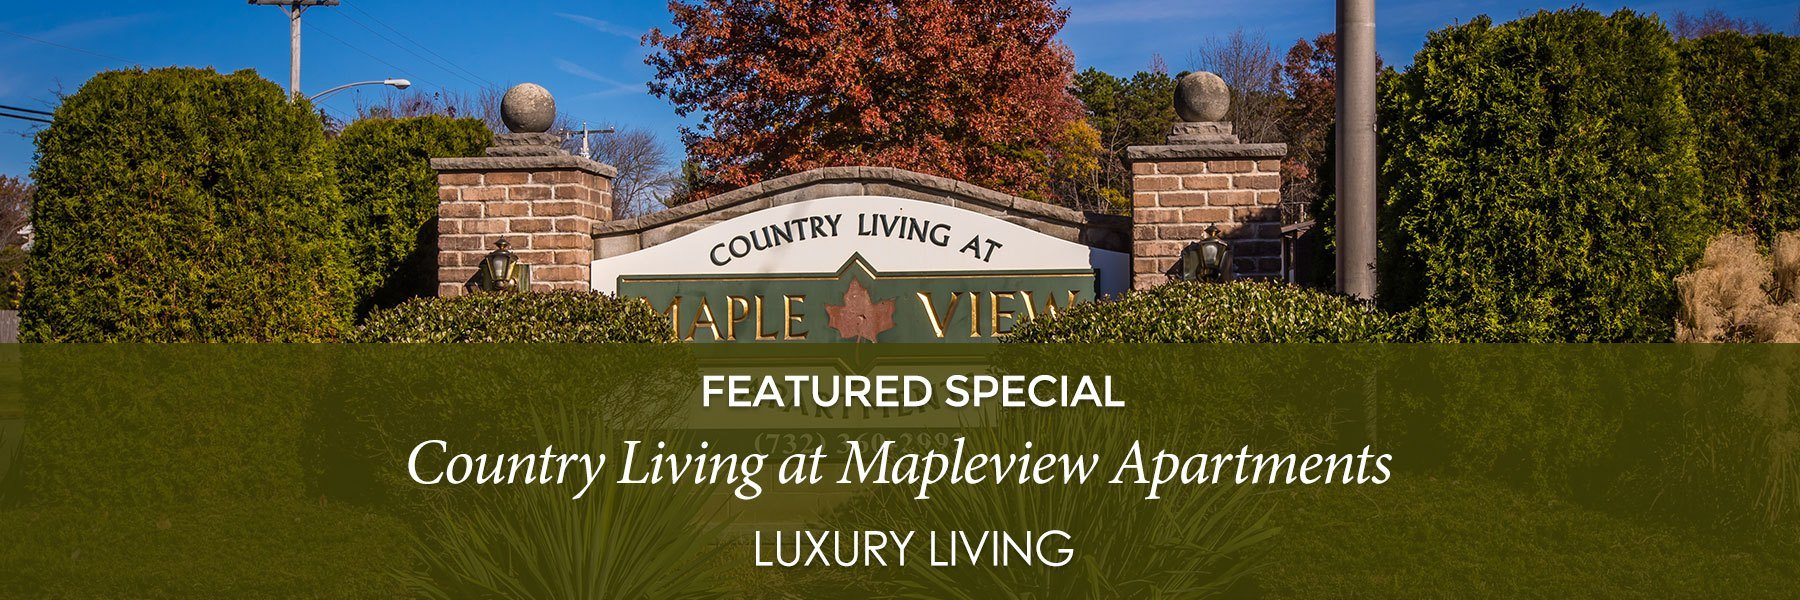 Country Living at Mapleview Apartments For Rent in Old Bridge, NJ Specials